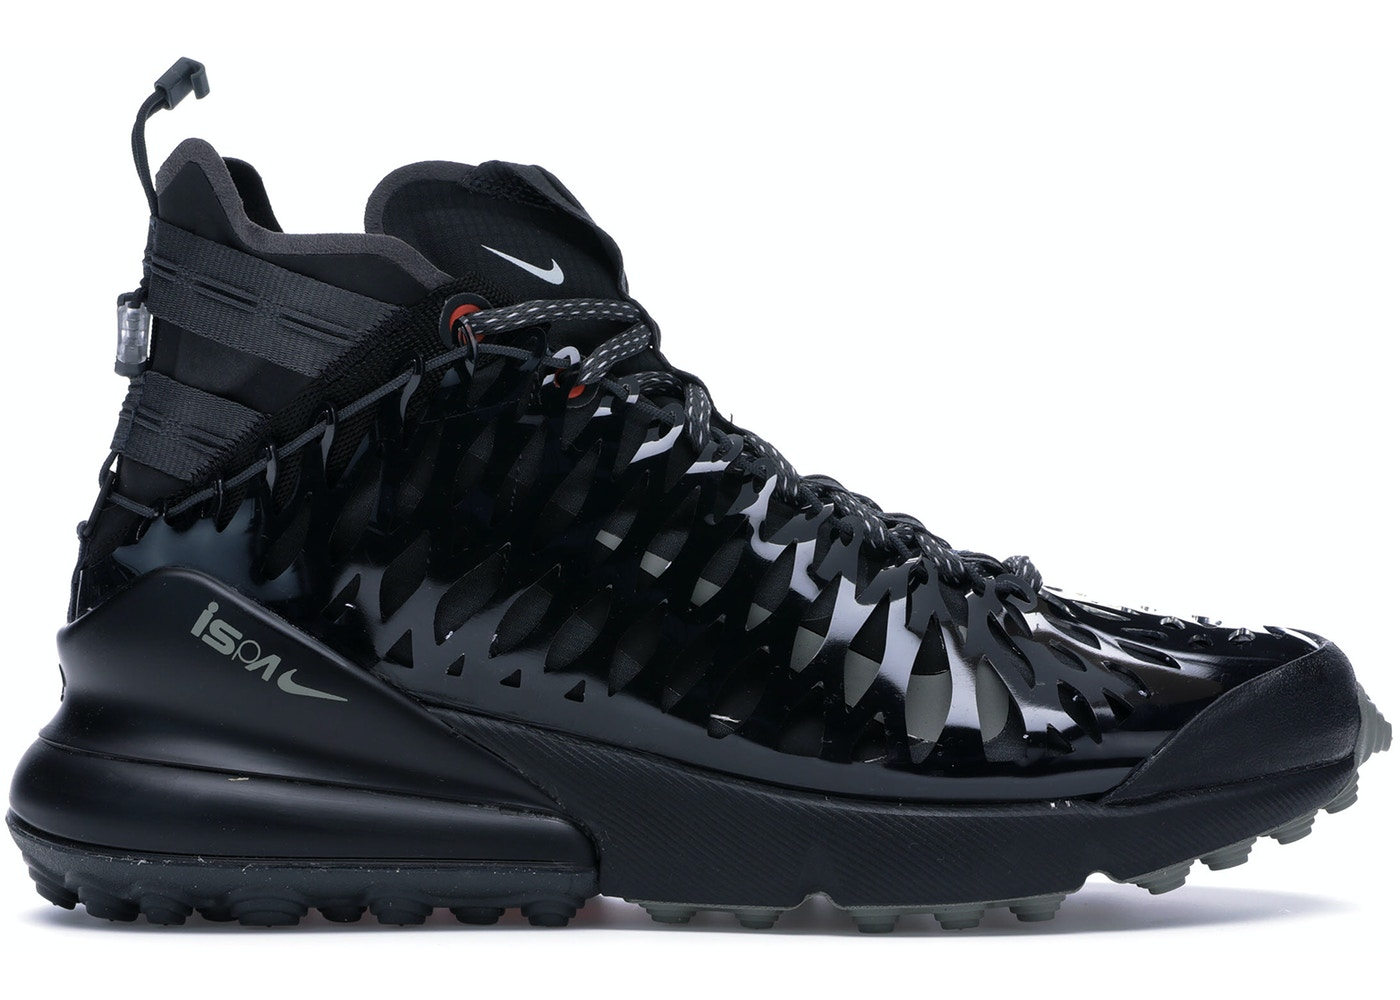 low priced 5430f 026a2 Air Max 270 ISPA Black Anthracite